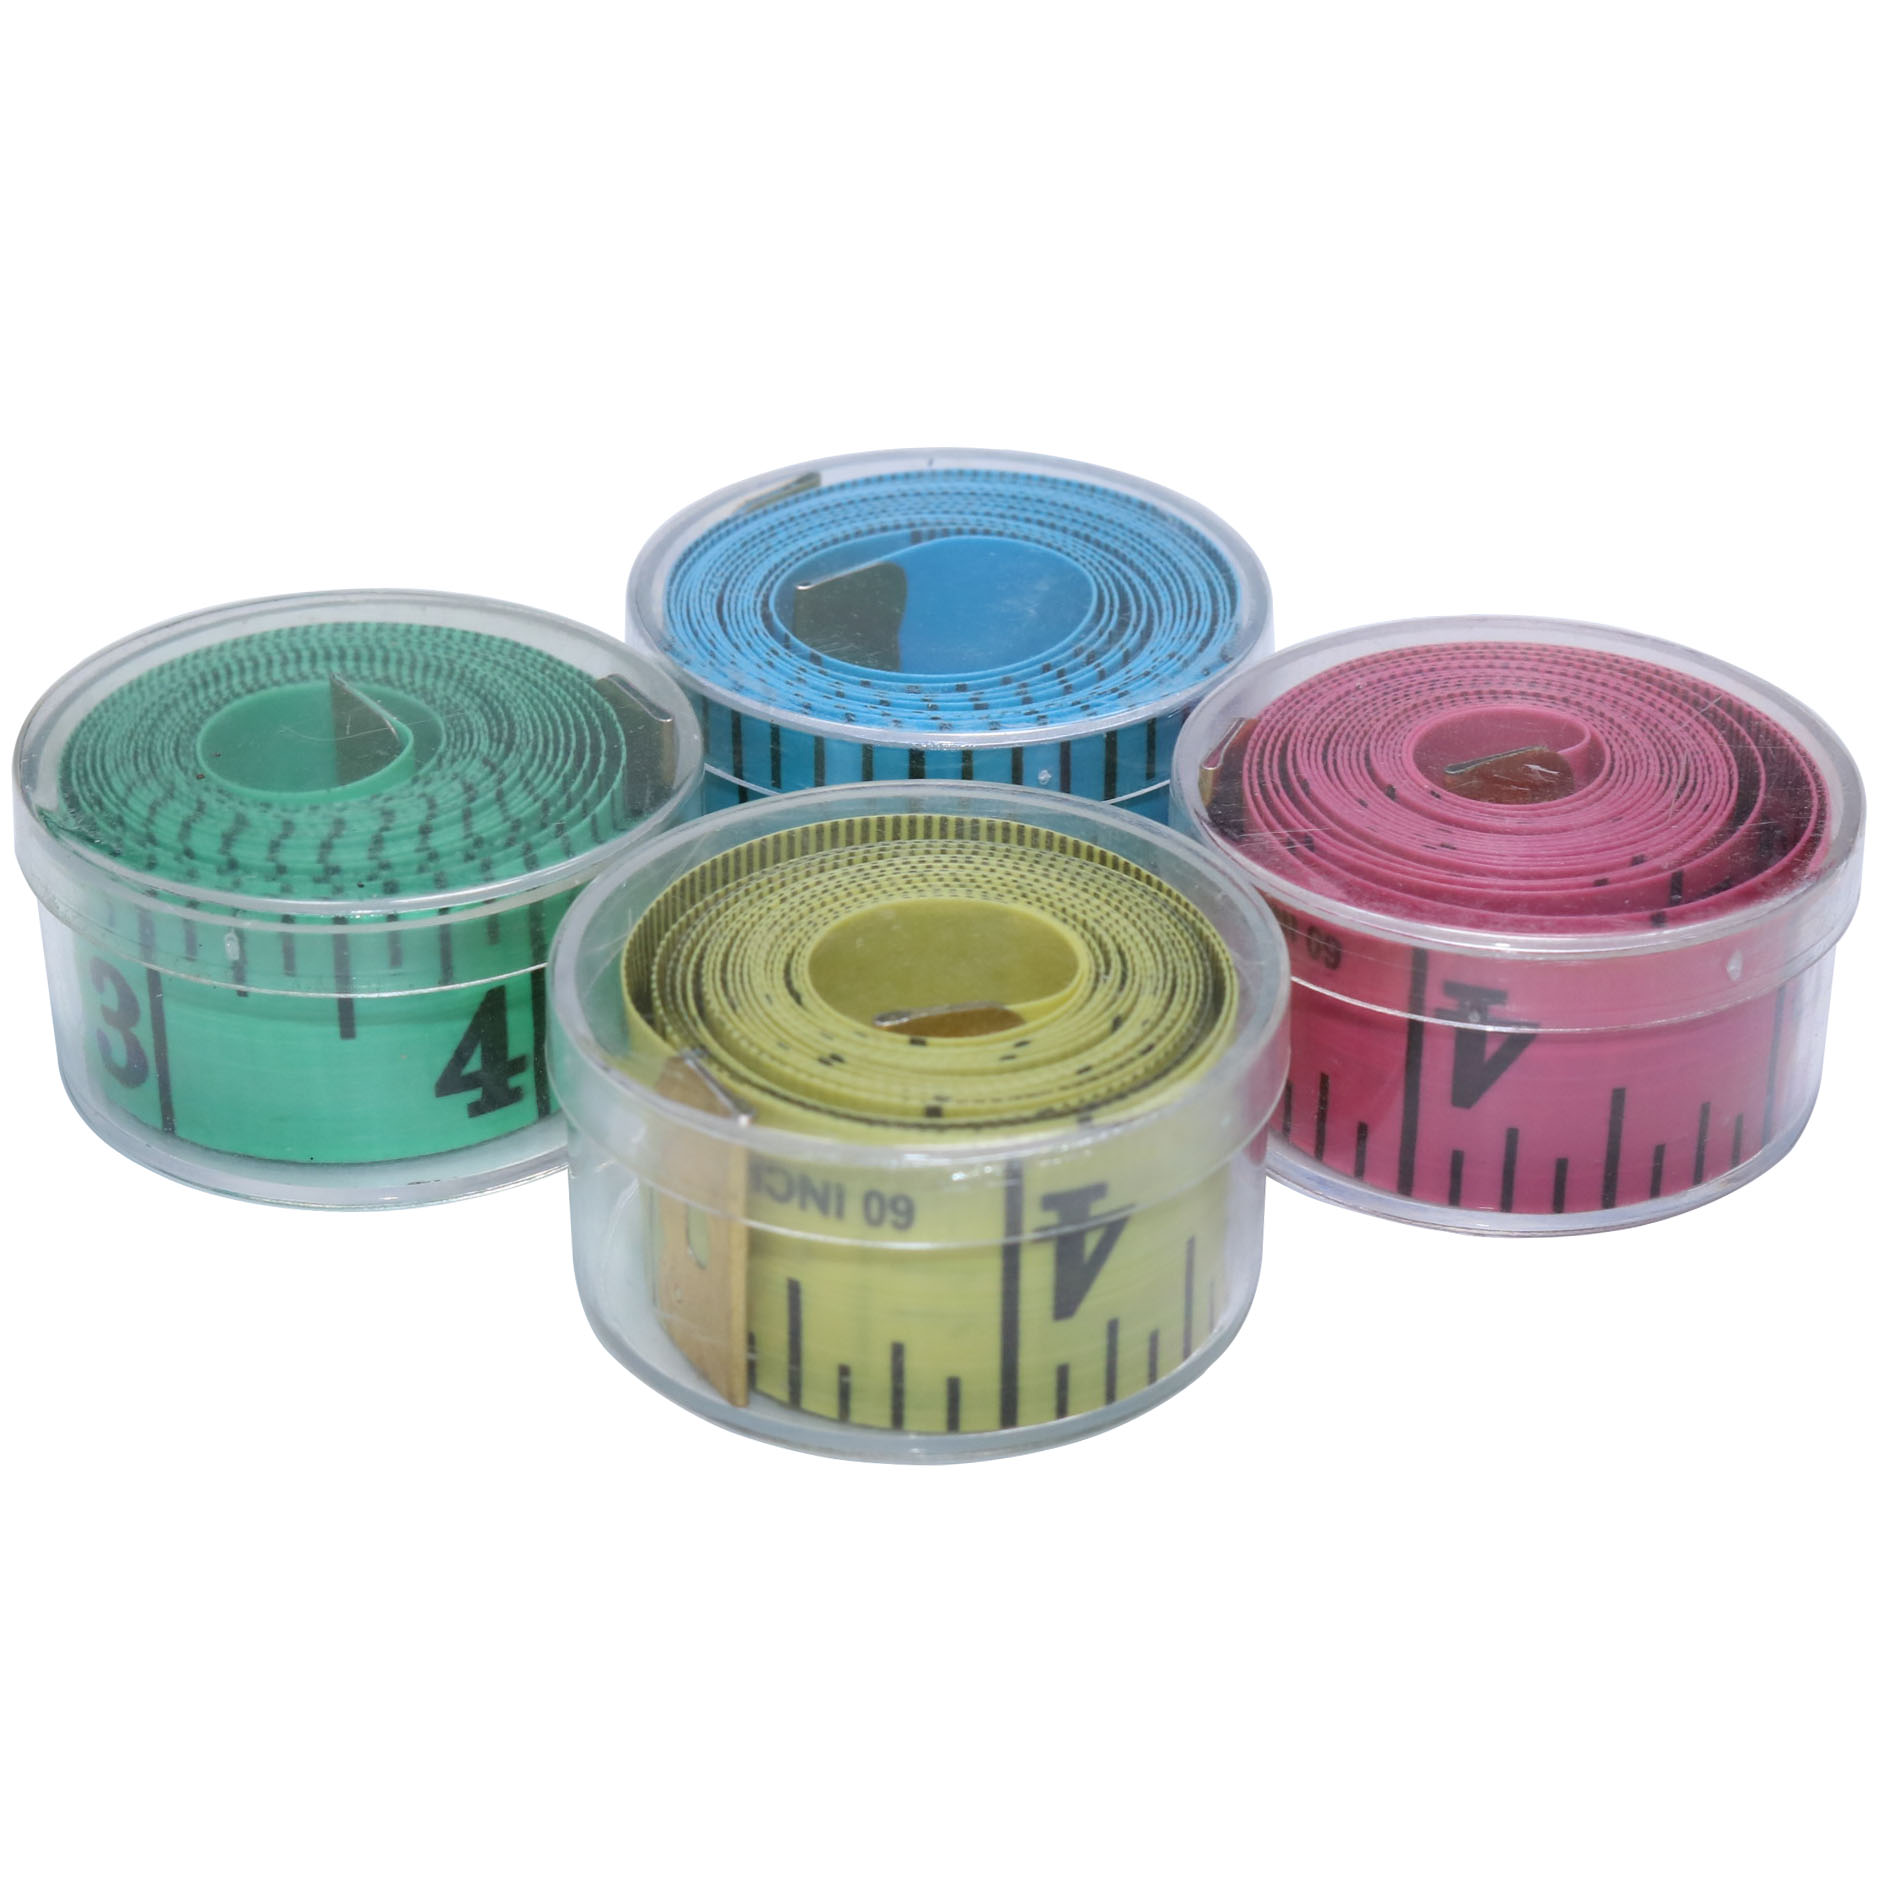 4 Pcs Soft Feet Length150cm/ Width 2cm/ Green Yellow Pink Mix Round Plastic Box Packaging Multi-function Measuring Ruler